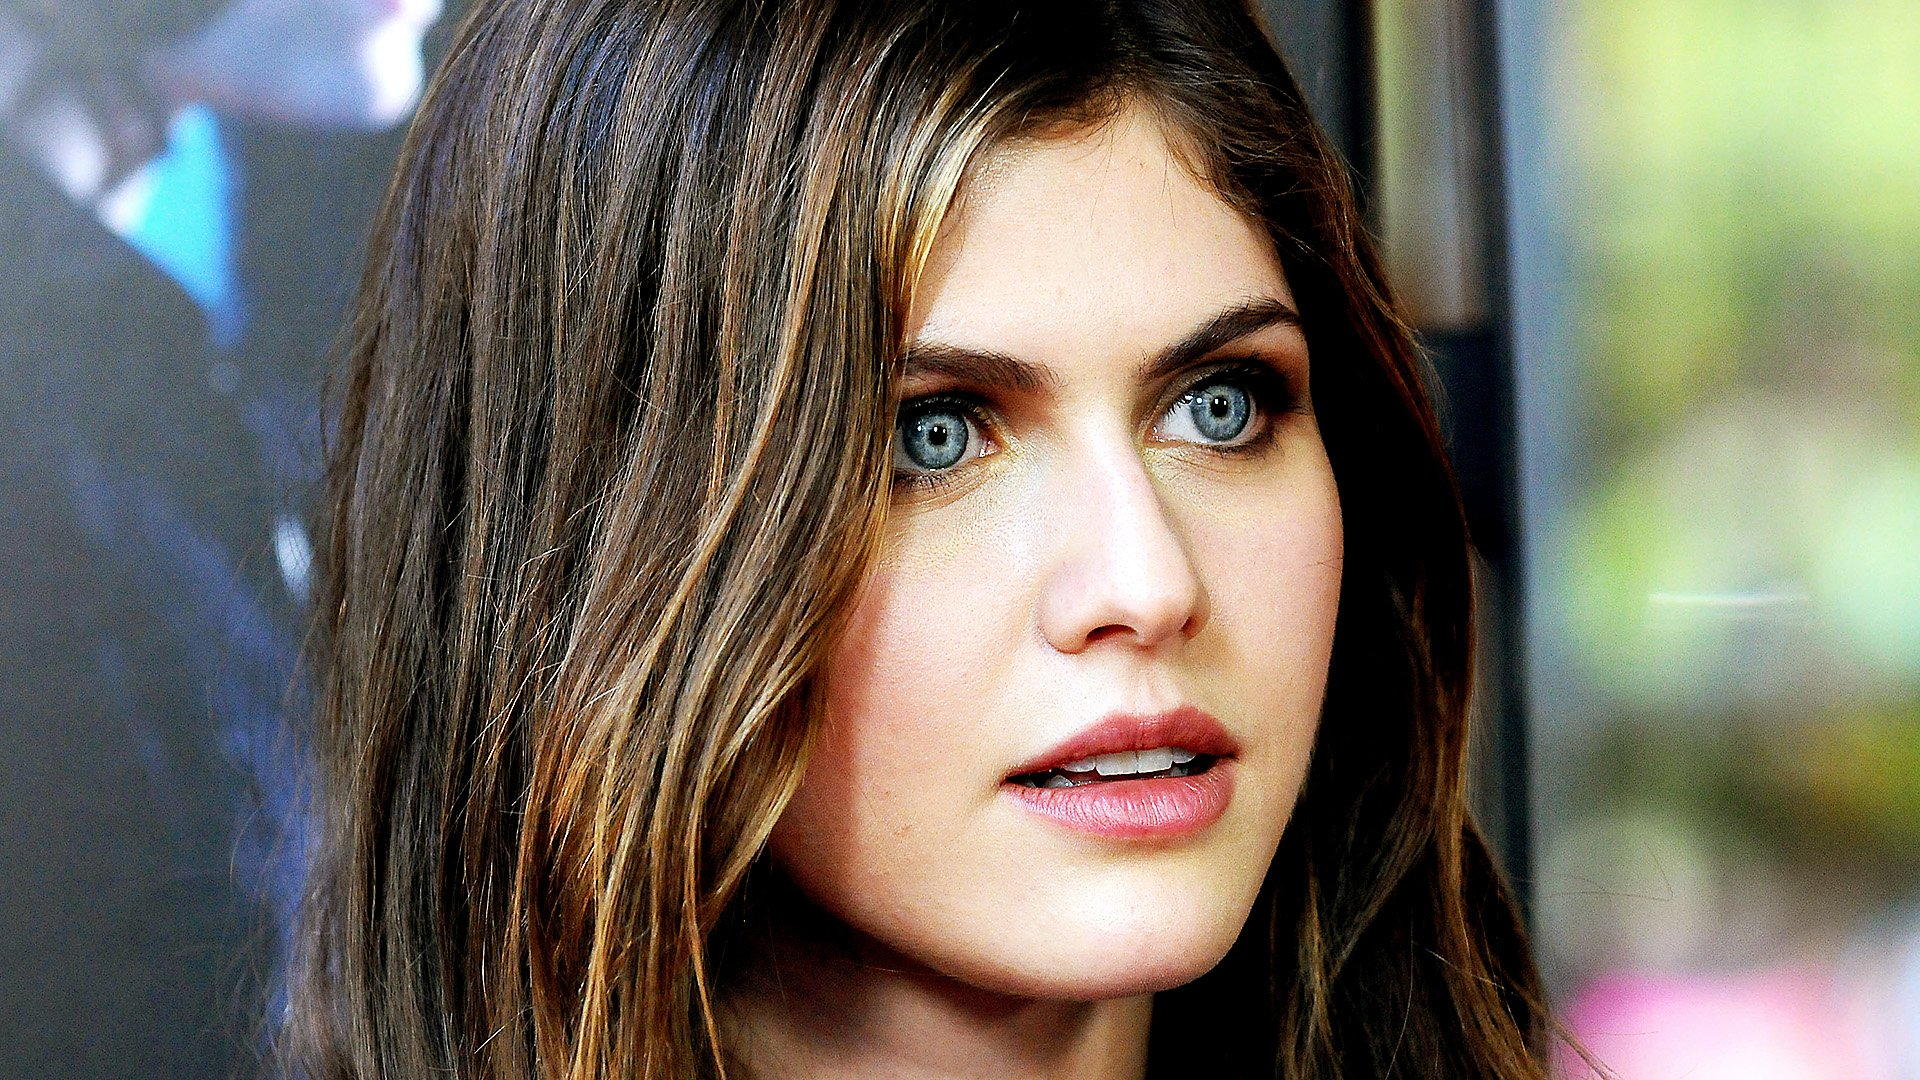 Alexandra Daddario Woman HD Wallpaper